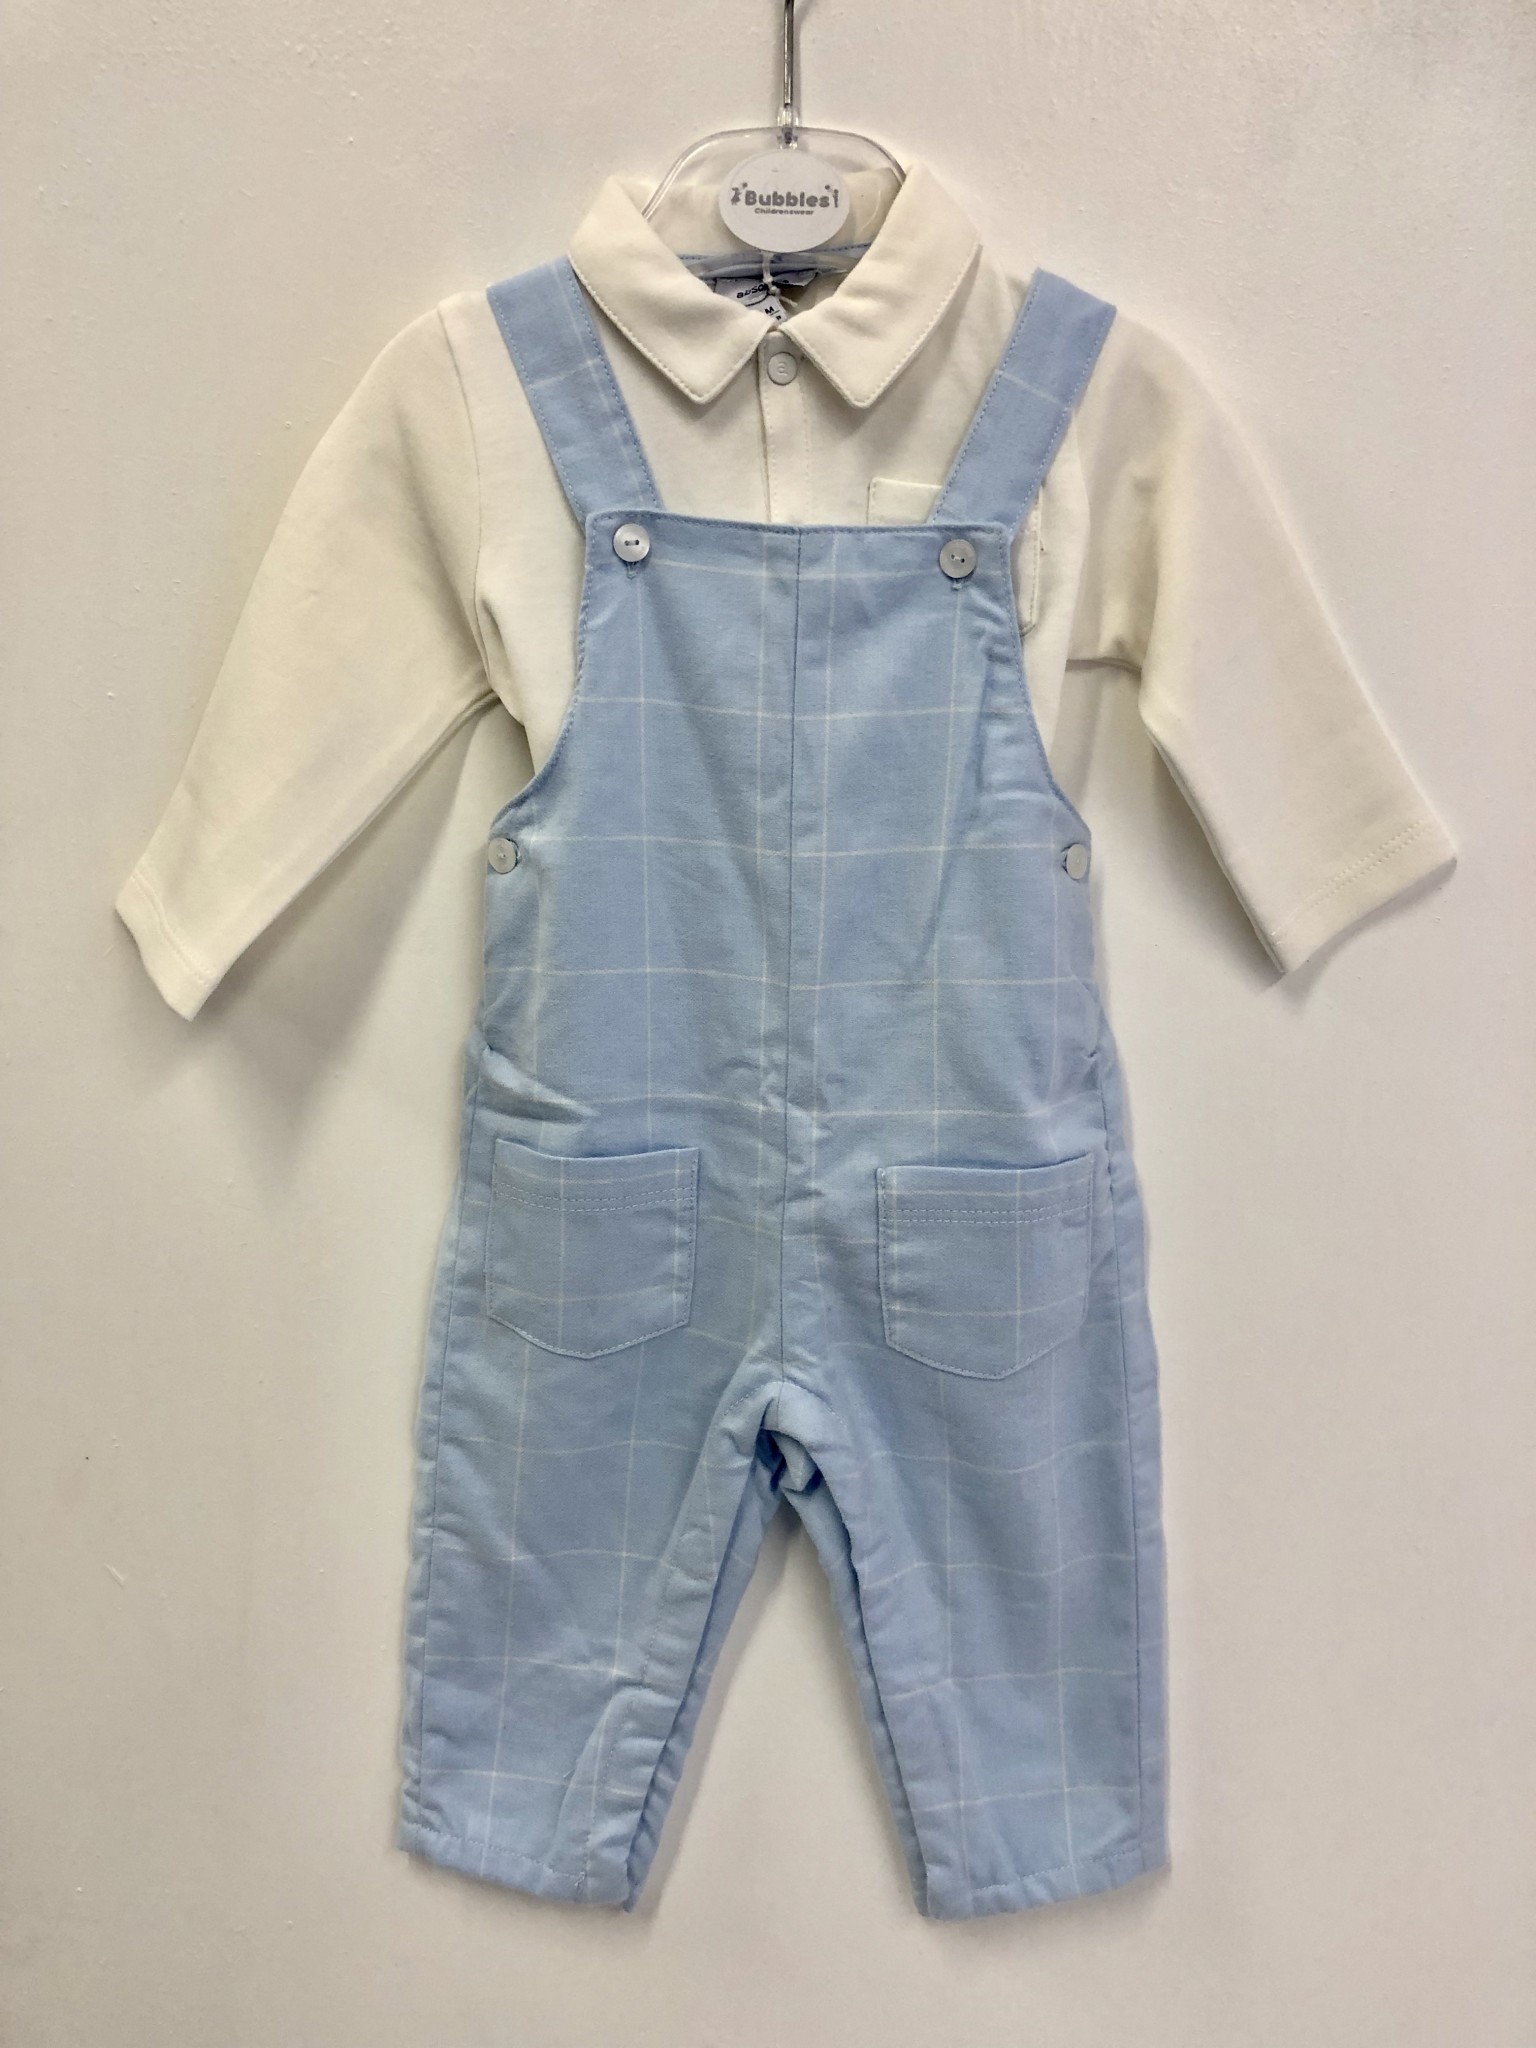 Absorba Absorba Pale Blue Check Dungaree And Winter White Top Set